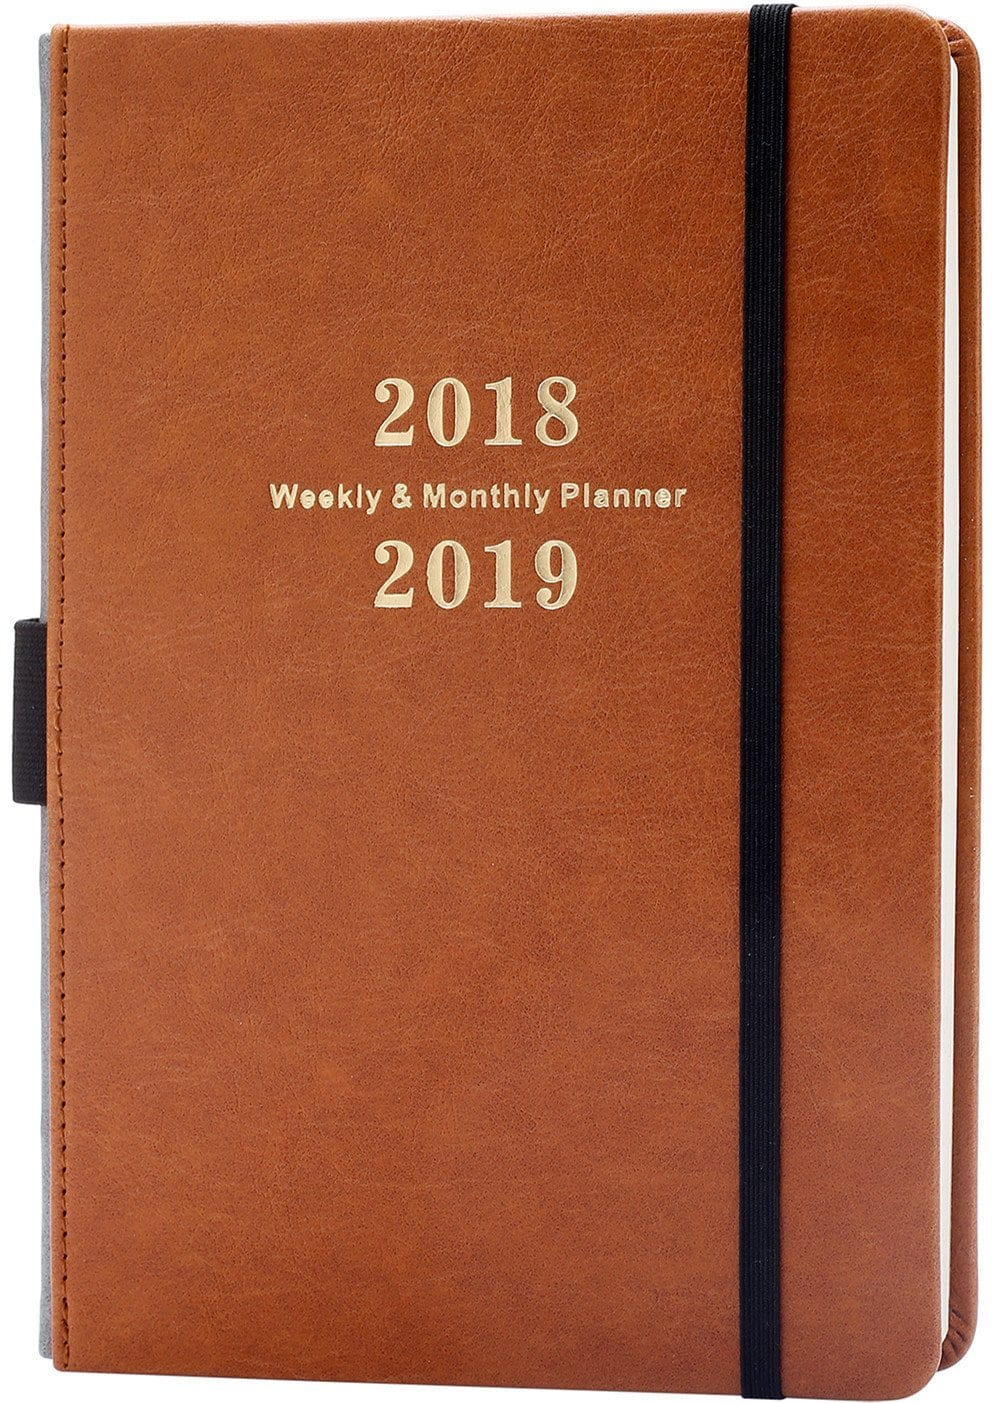 2018-2019 Weekly & Monthly Academic Planner with Calendar Stickers $7.99 + FS w/ Prime